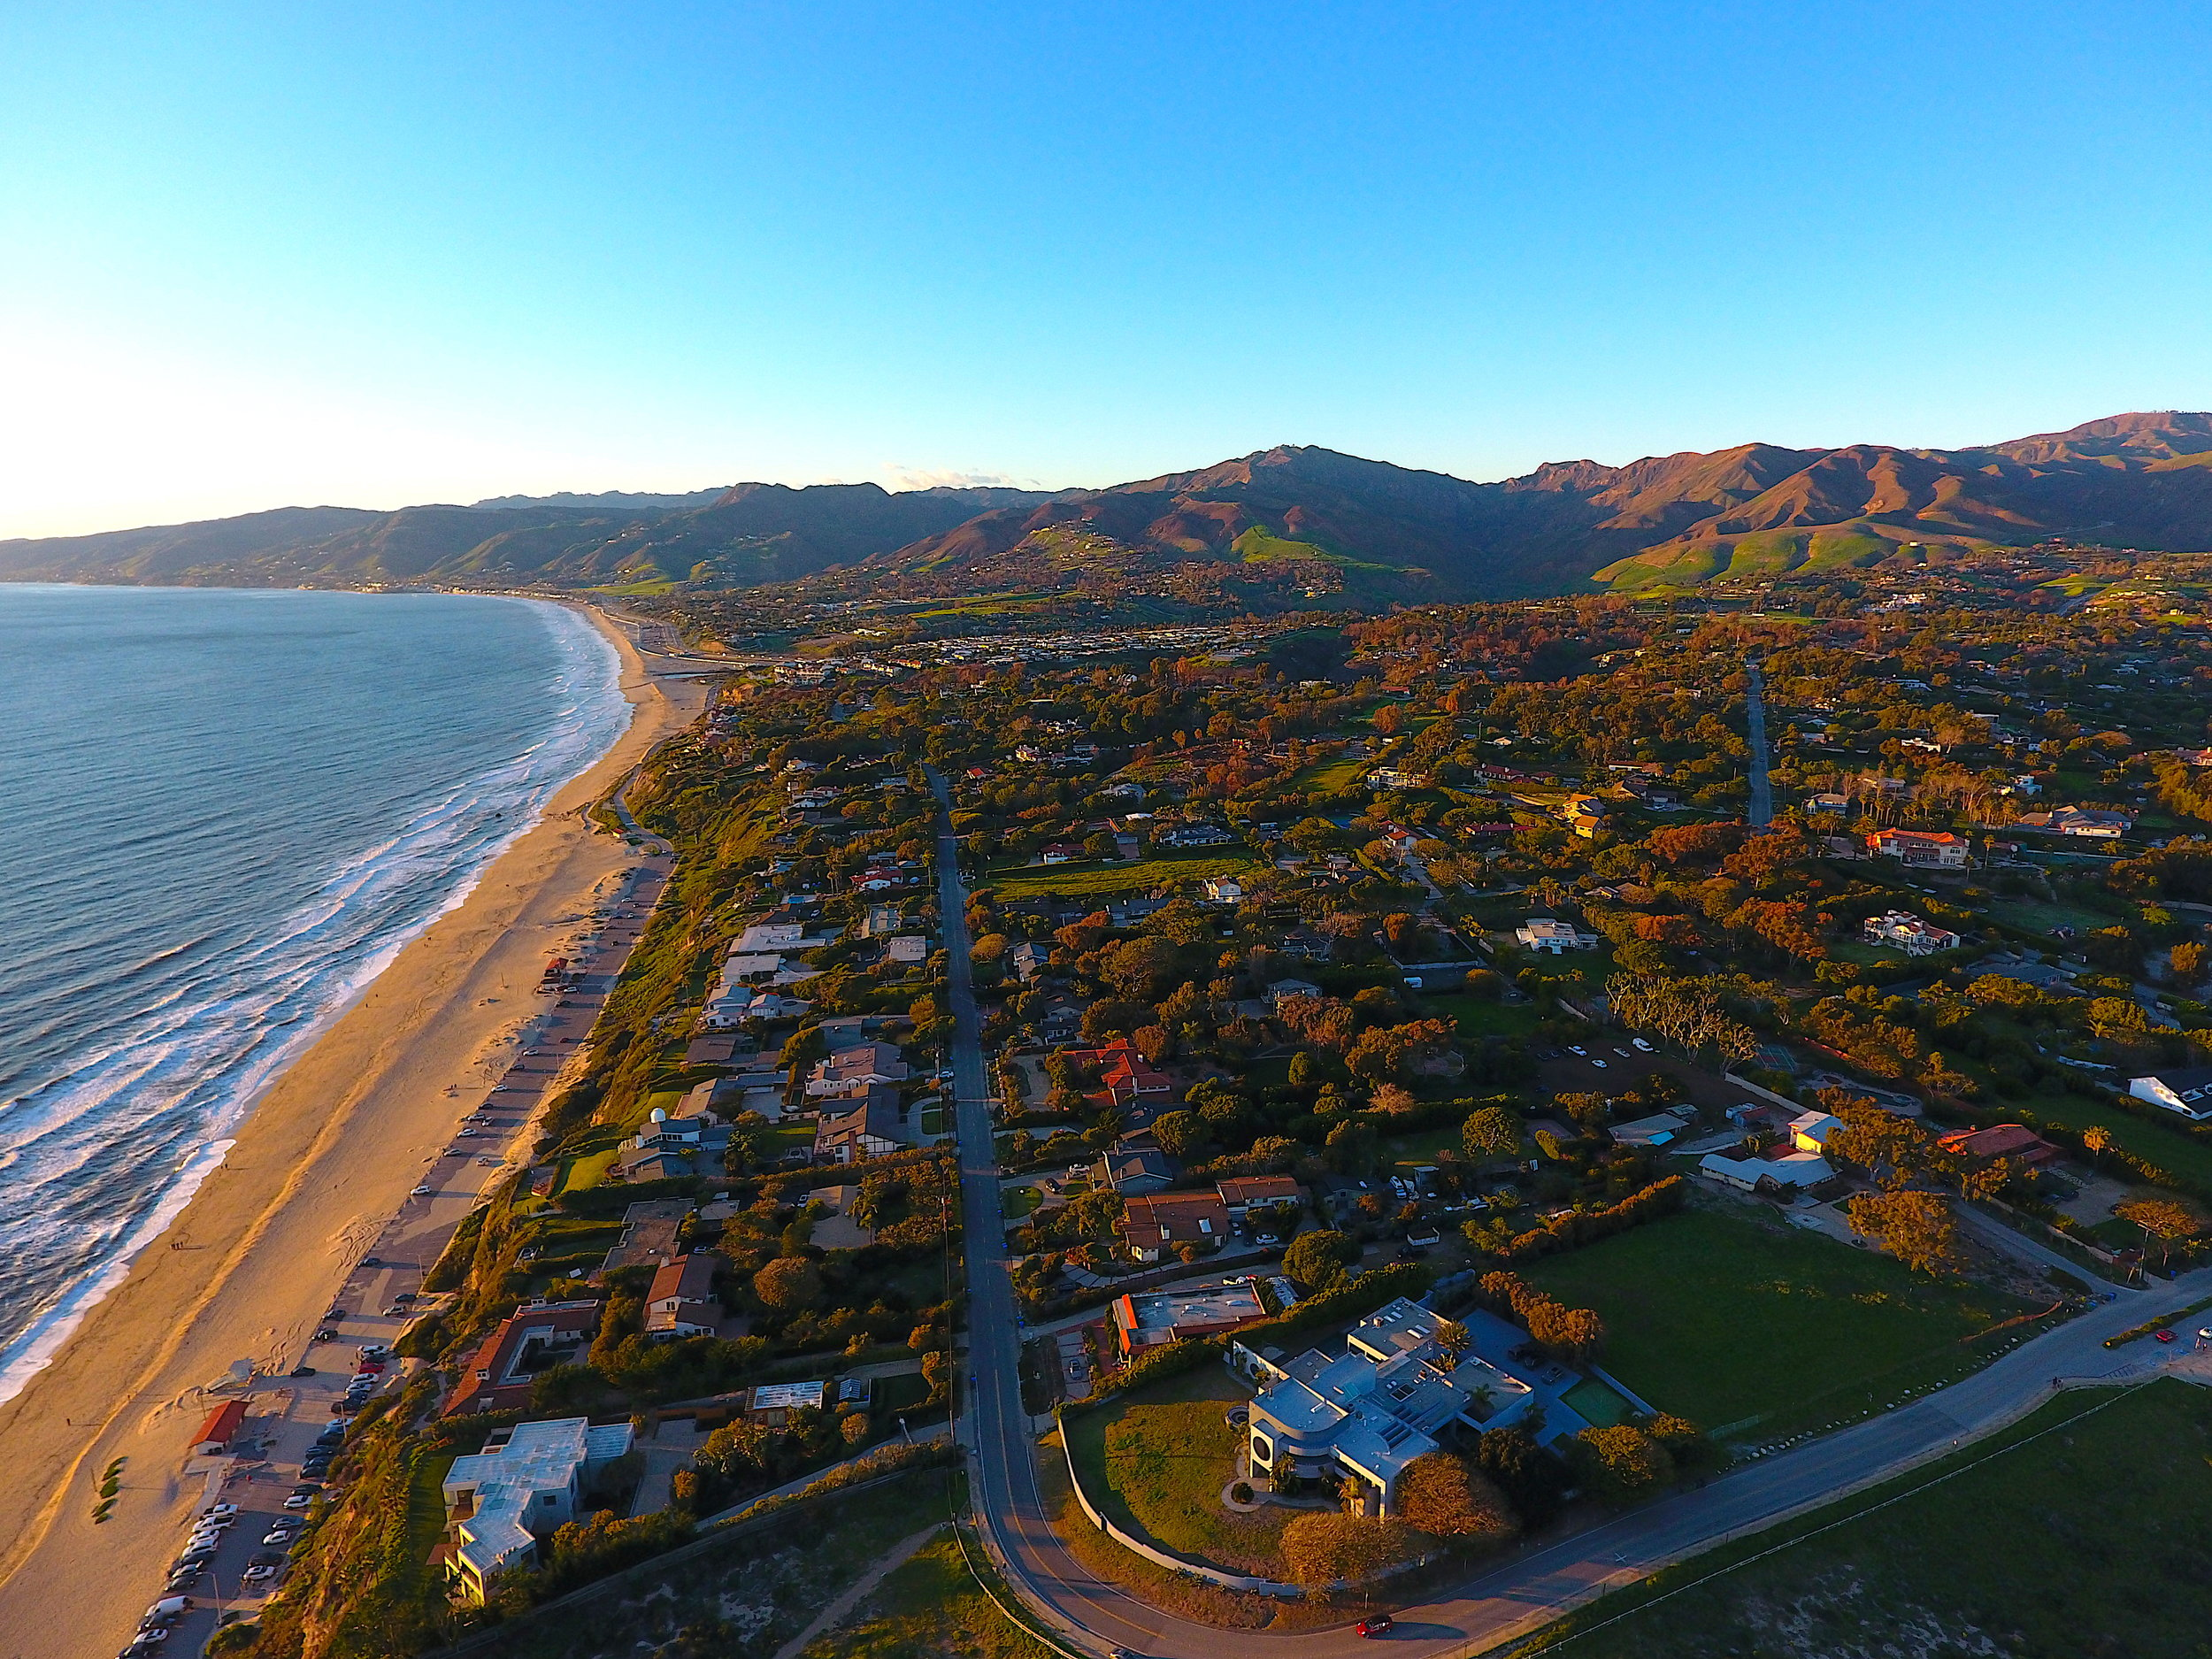 One of the most expensive real estate markets in Malibu, Point Dume is largely comprised of larger homes, including some of Malibu's most exclusive ocean-abutting properties.